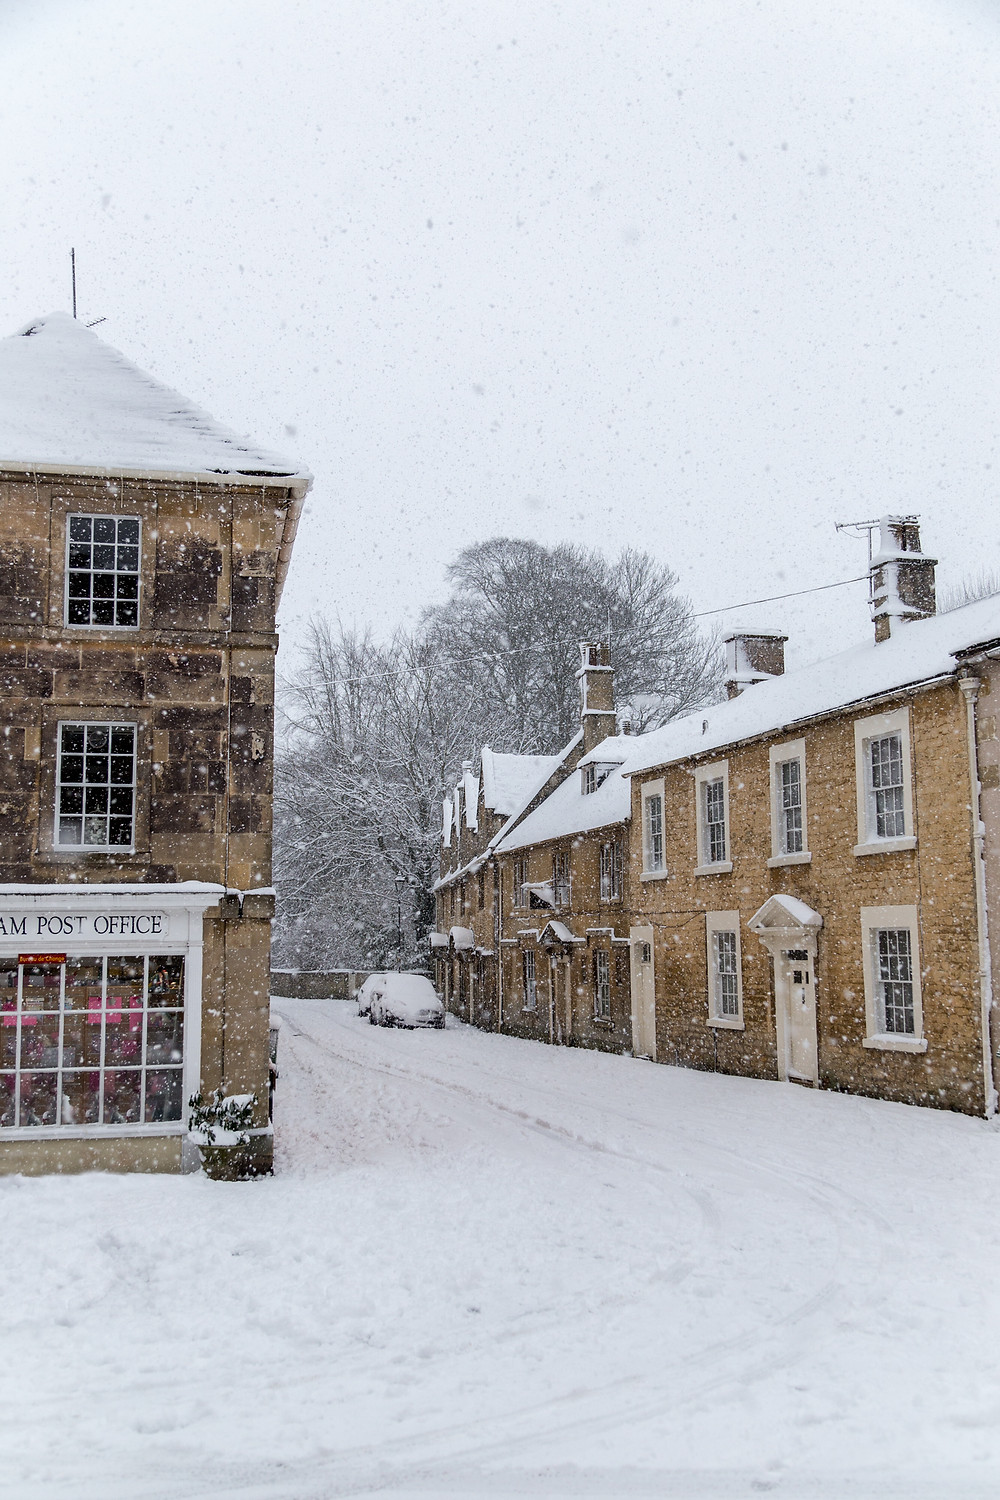 No deliveries today from Corsham Post Office